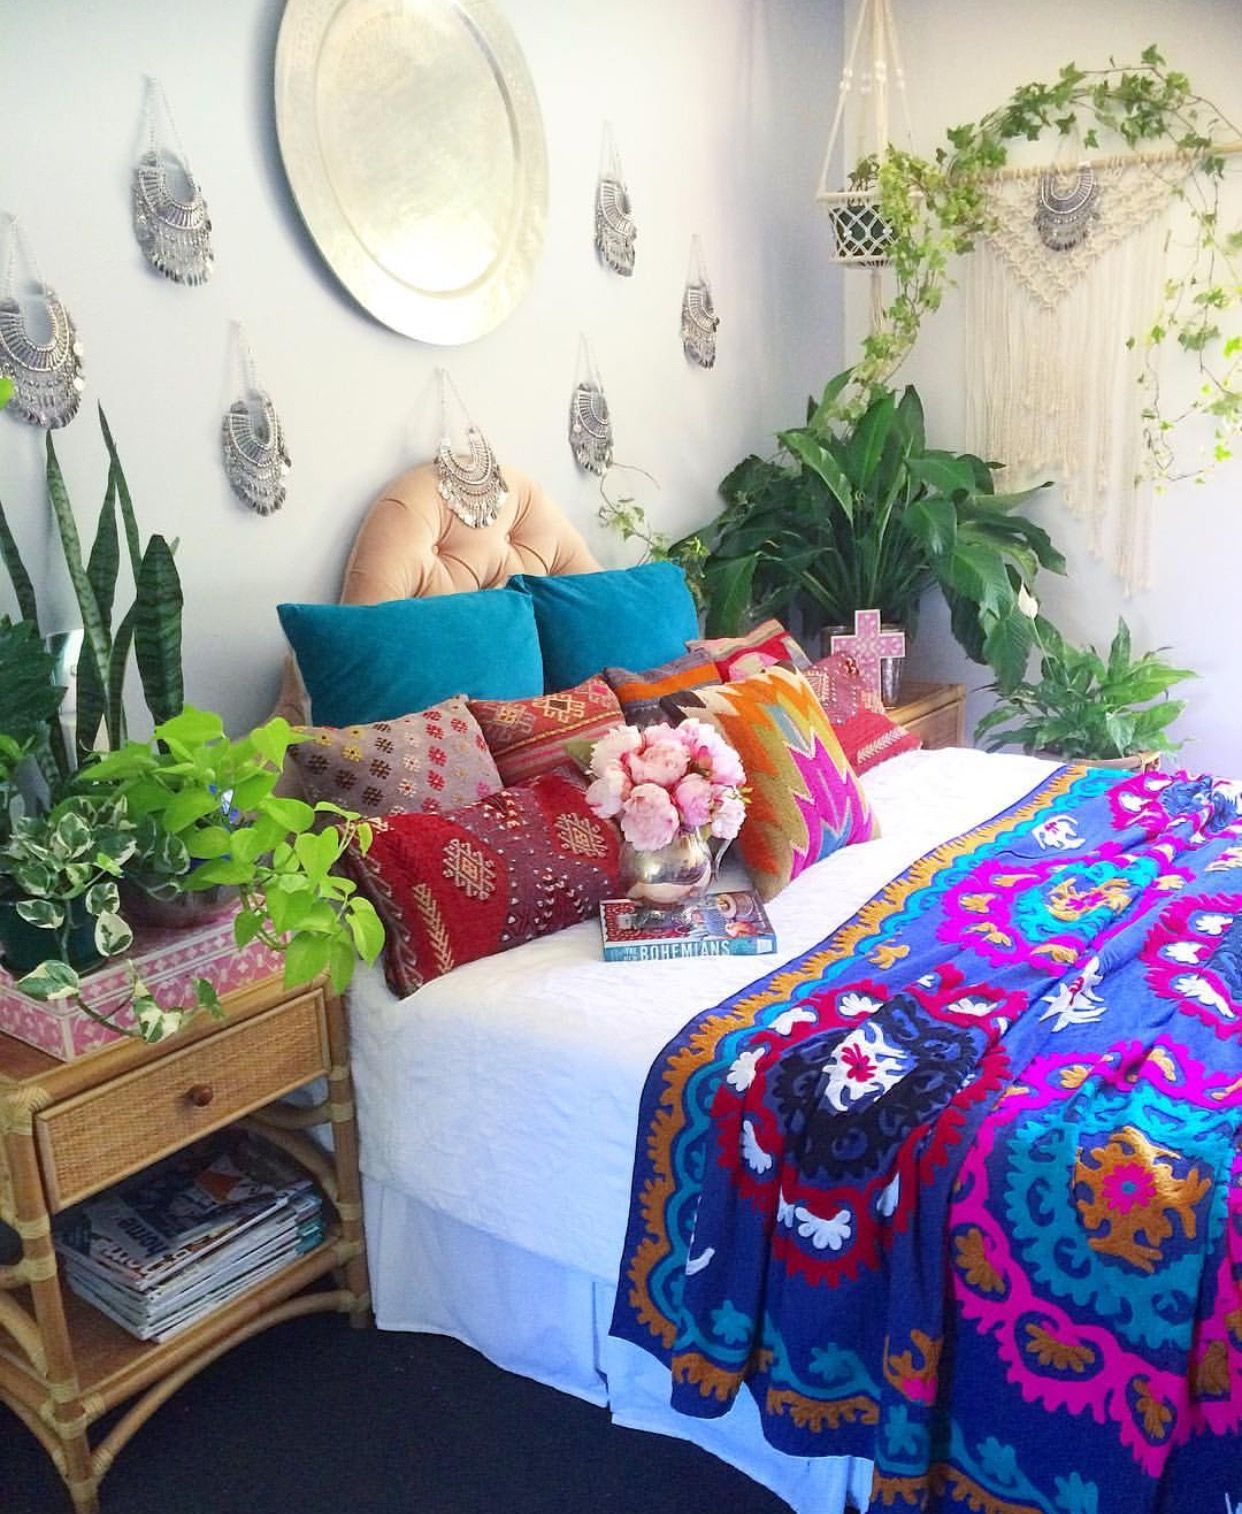 deco hippie chic dormitorio. Black Bedroom Furniture Sets. Home Design Ideas